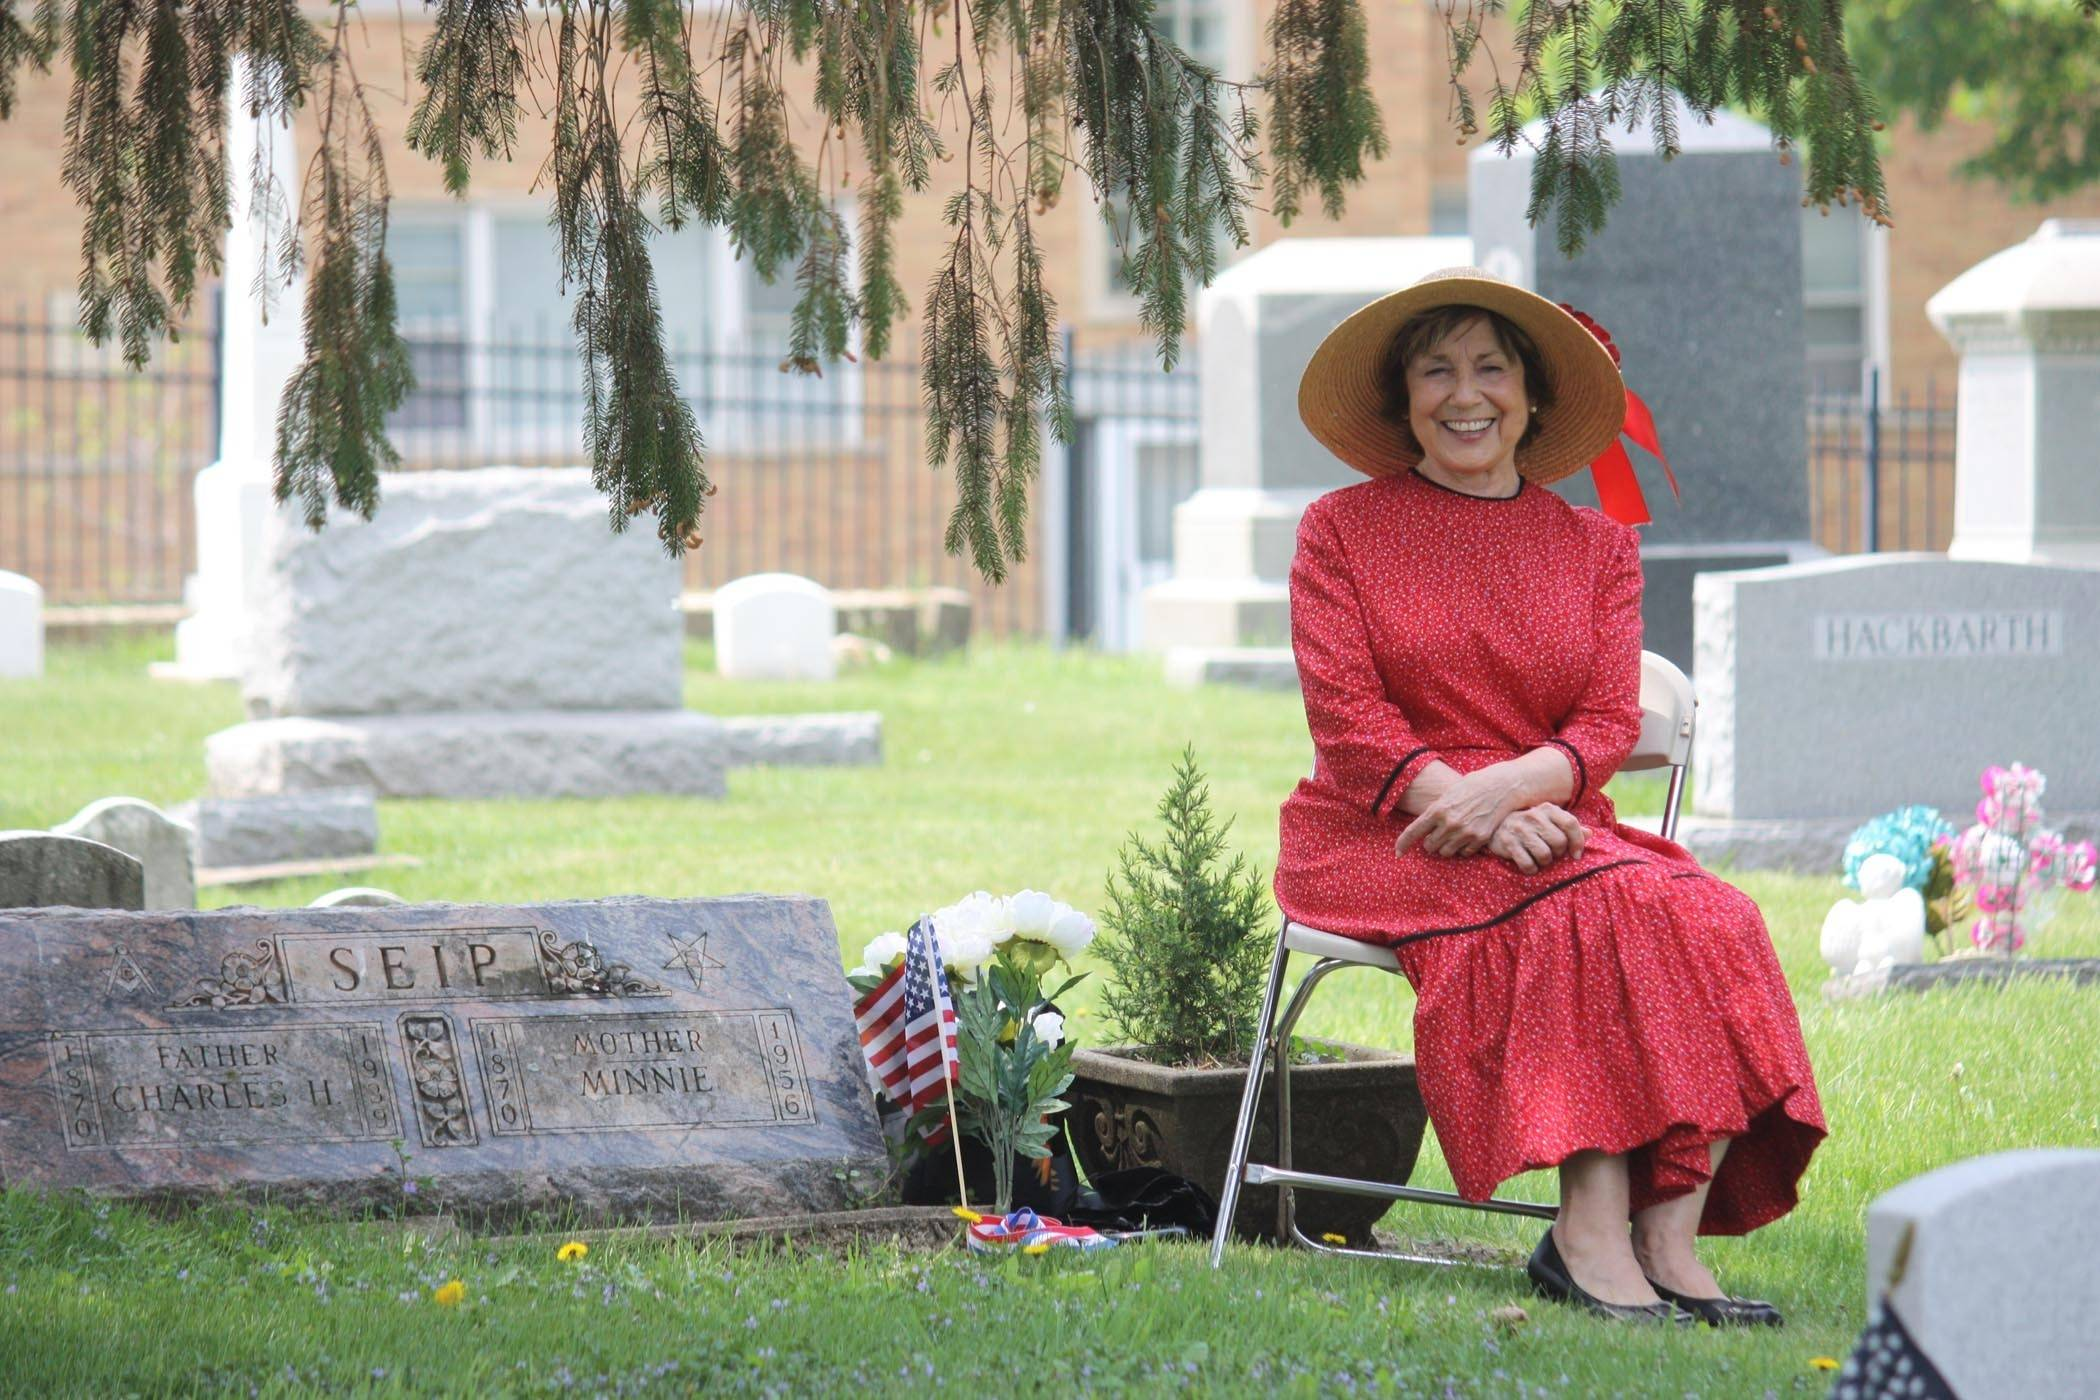 The Palatine Historical Society Annual Cemetery Walk is from 1 to 4 p.m. Sunday, May 18.